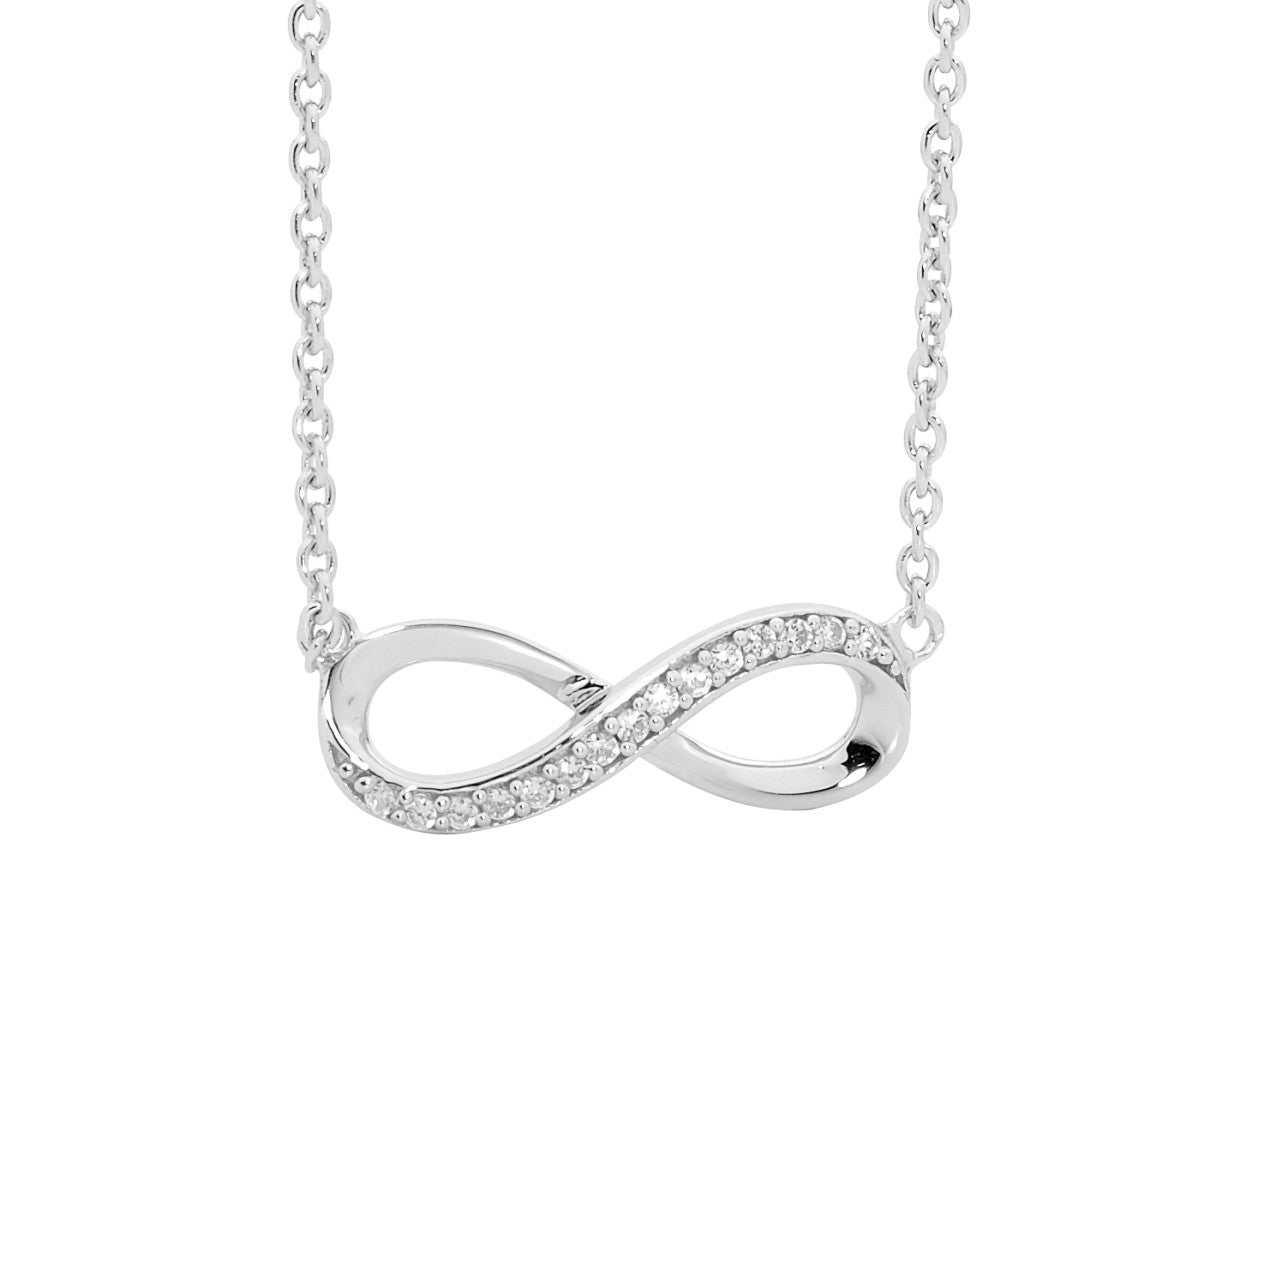 Sterling silver infinity necklace - Red Carpet Jewellers